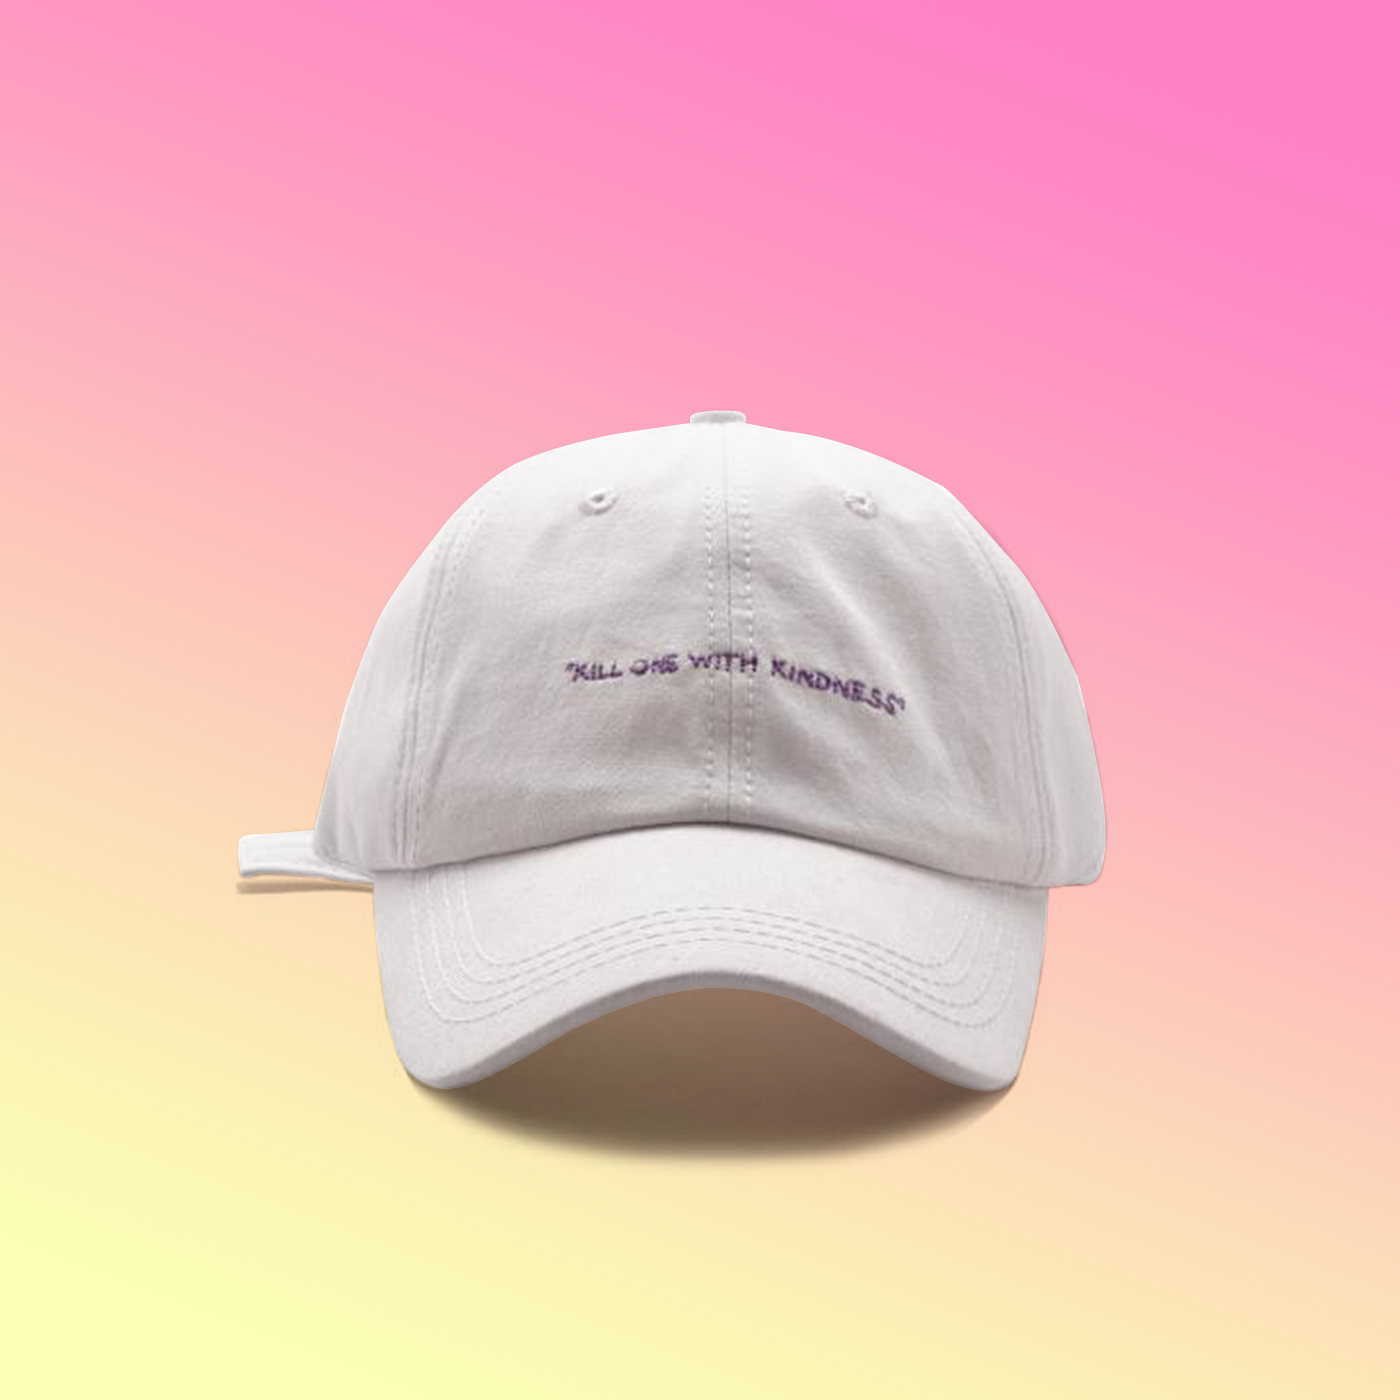 787add7e95c KILL ONE WITH KINDNESS BASEBALL CAP WHITE · soldrelax · Online Store ...